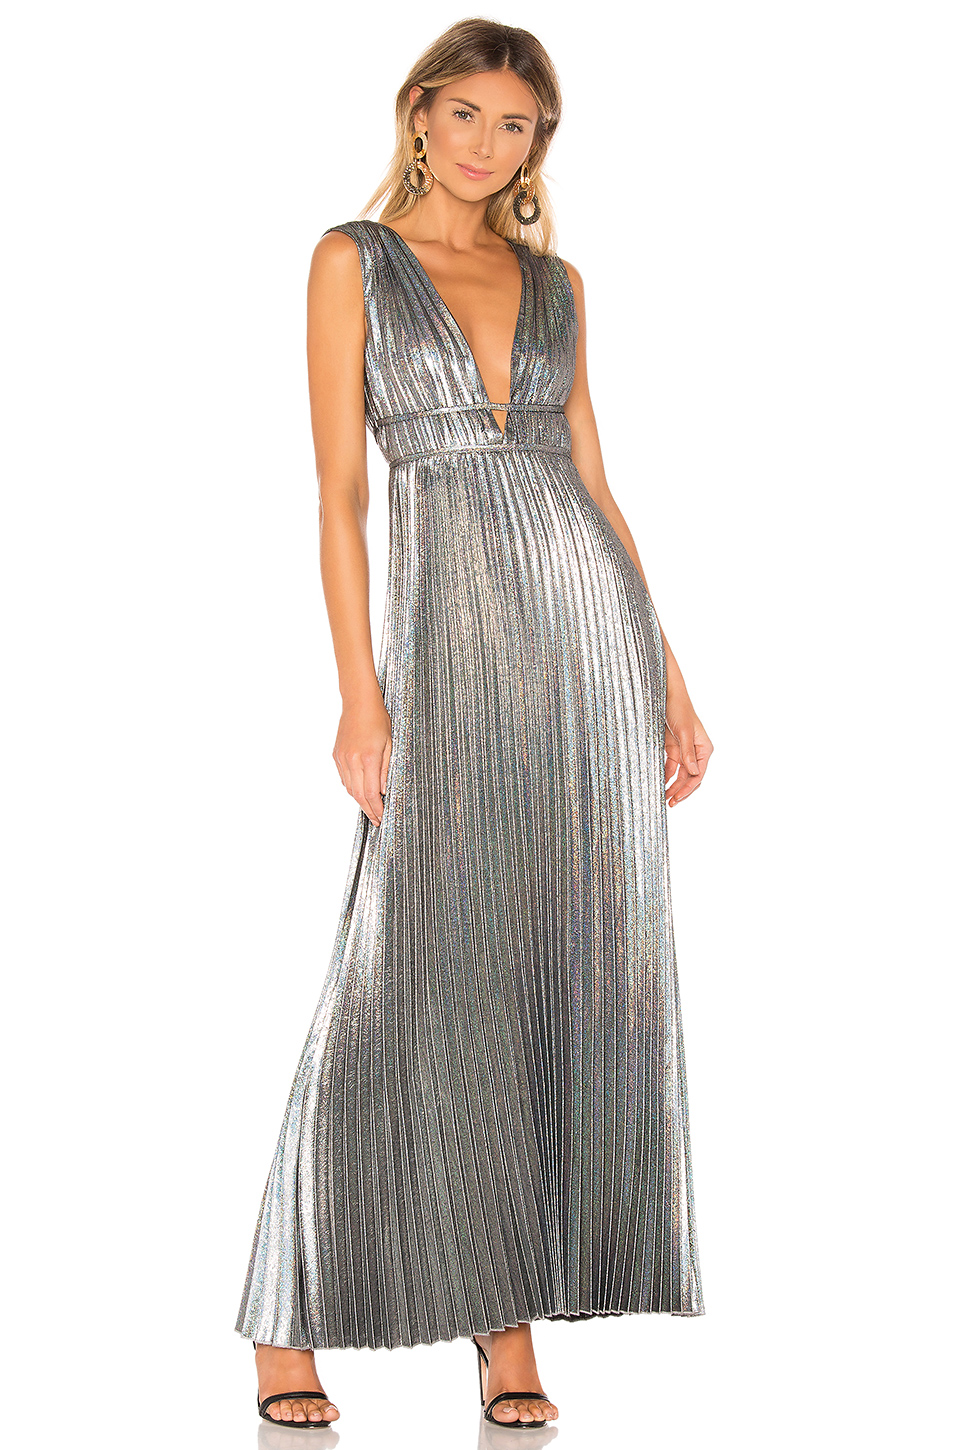 House Of Harlow 1960 X Revolve Esme Dress In Metallic Silver. In Hologram Multi